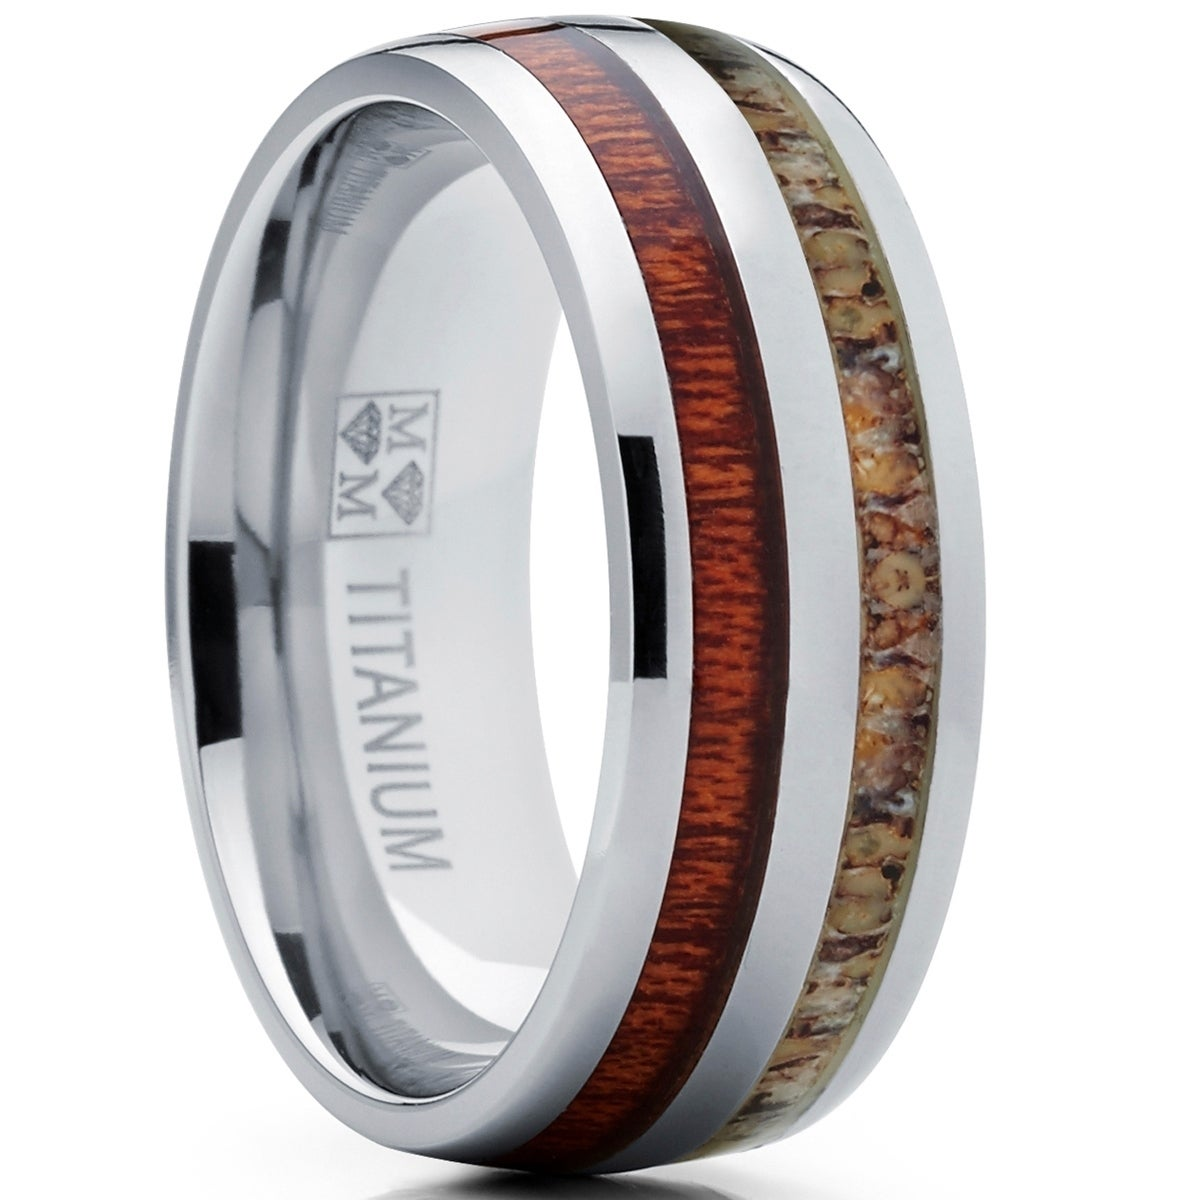 Oliveti Men's Hunting Dome Titanium Ring with Real Deer Antler and koa Wood Inlay Outdoor Band (10)